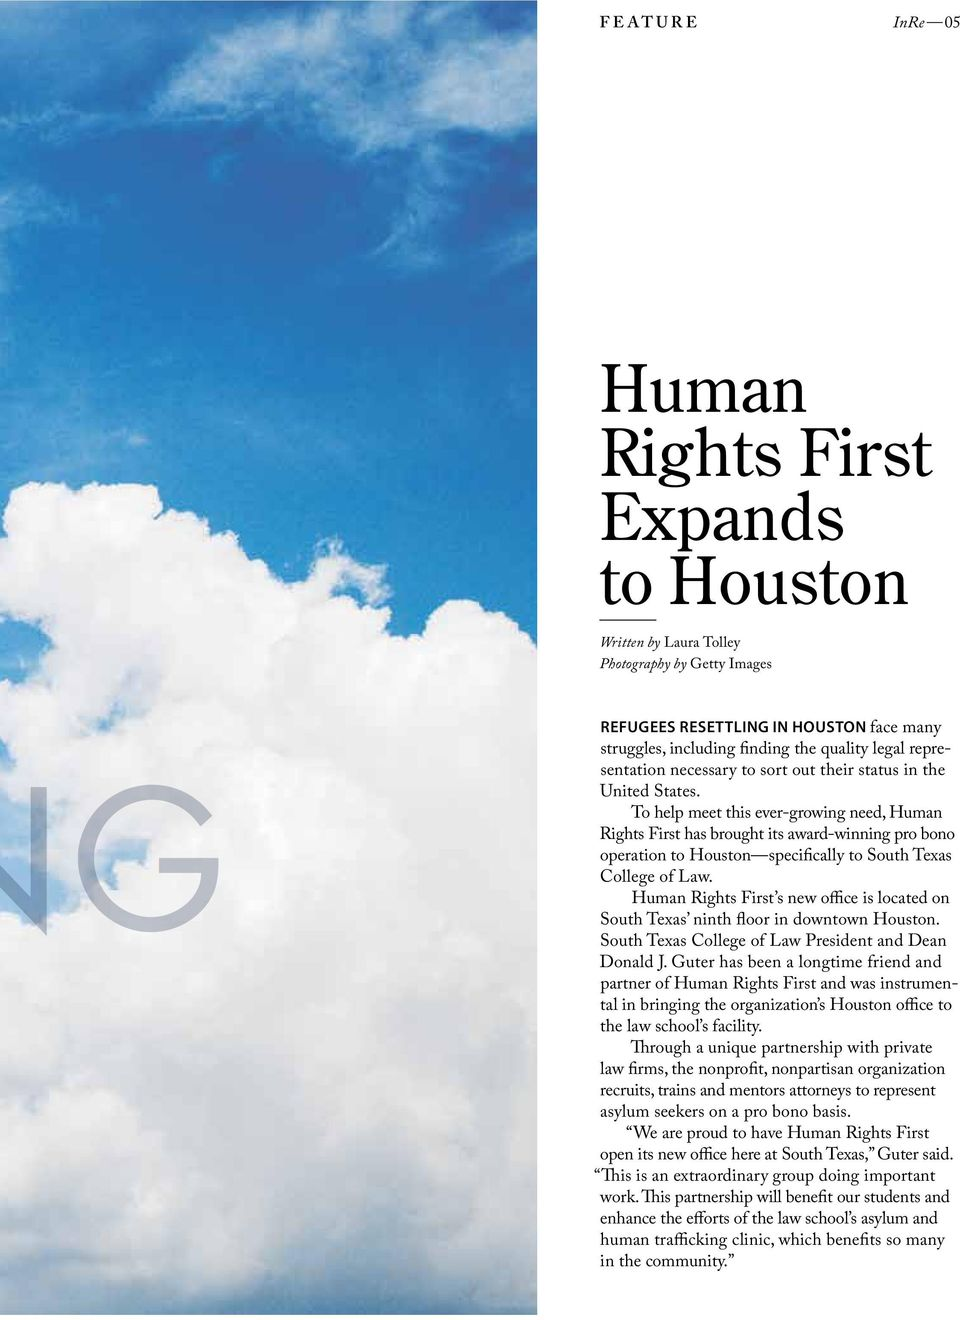 To help meet this ever-growing need, Human Rights First has brought its award-winning pro bono operation to Houston specifically to South Texas College of Law.